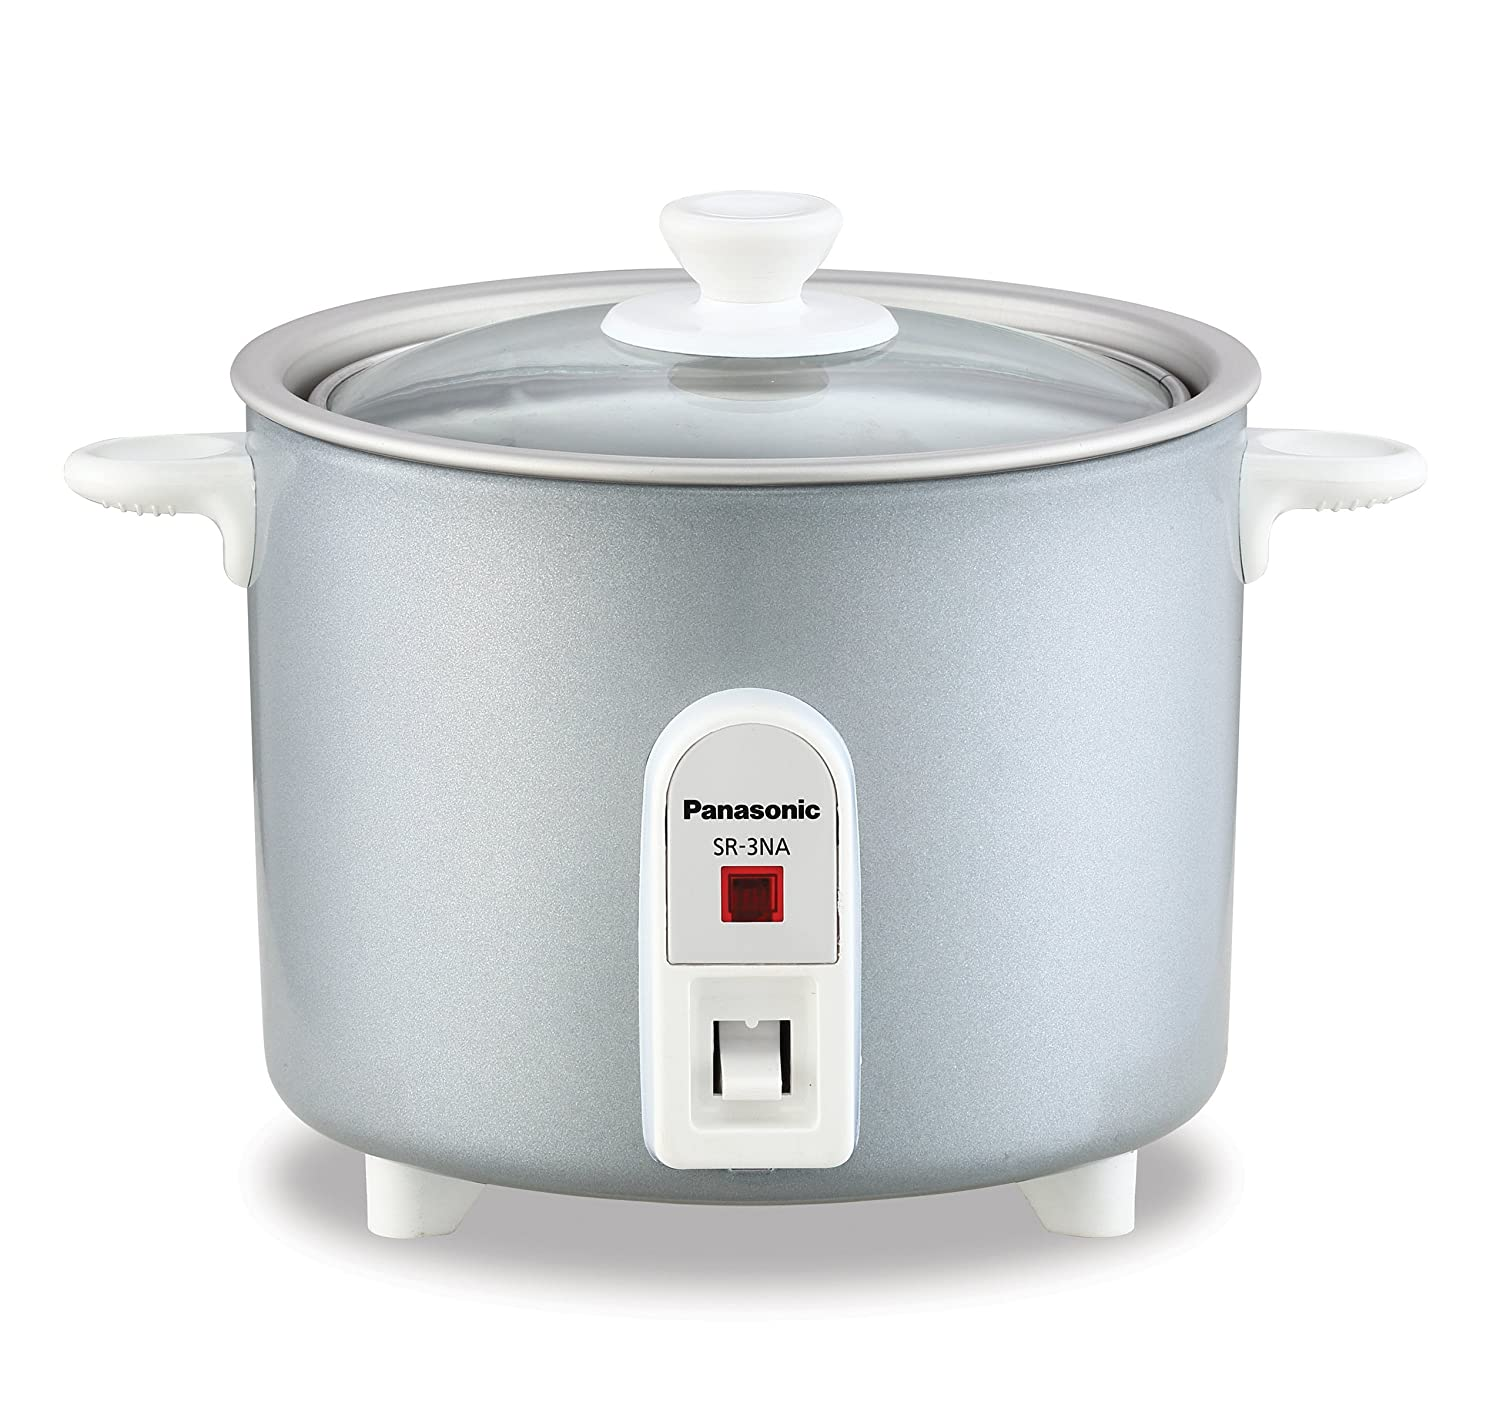 Panasonic SR-3NAL 1.5-Cup (Uncooked) Automatic Rice Cooker, Silver